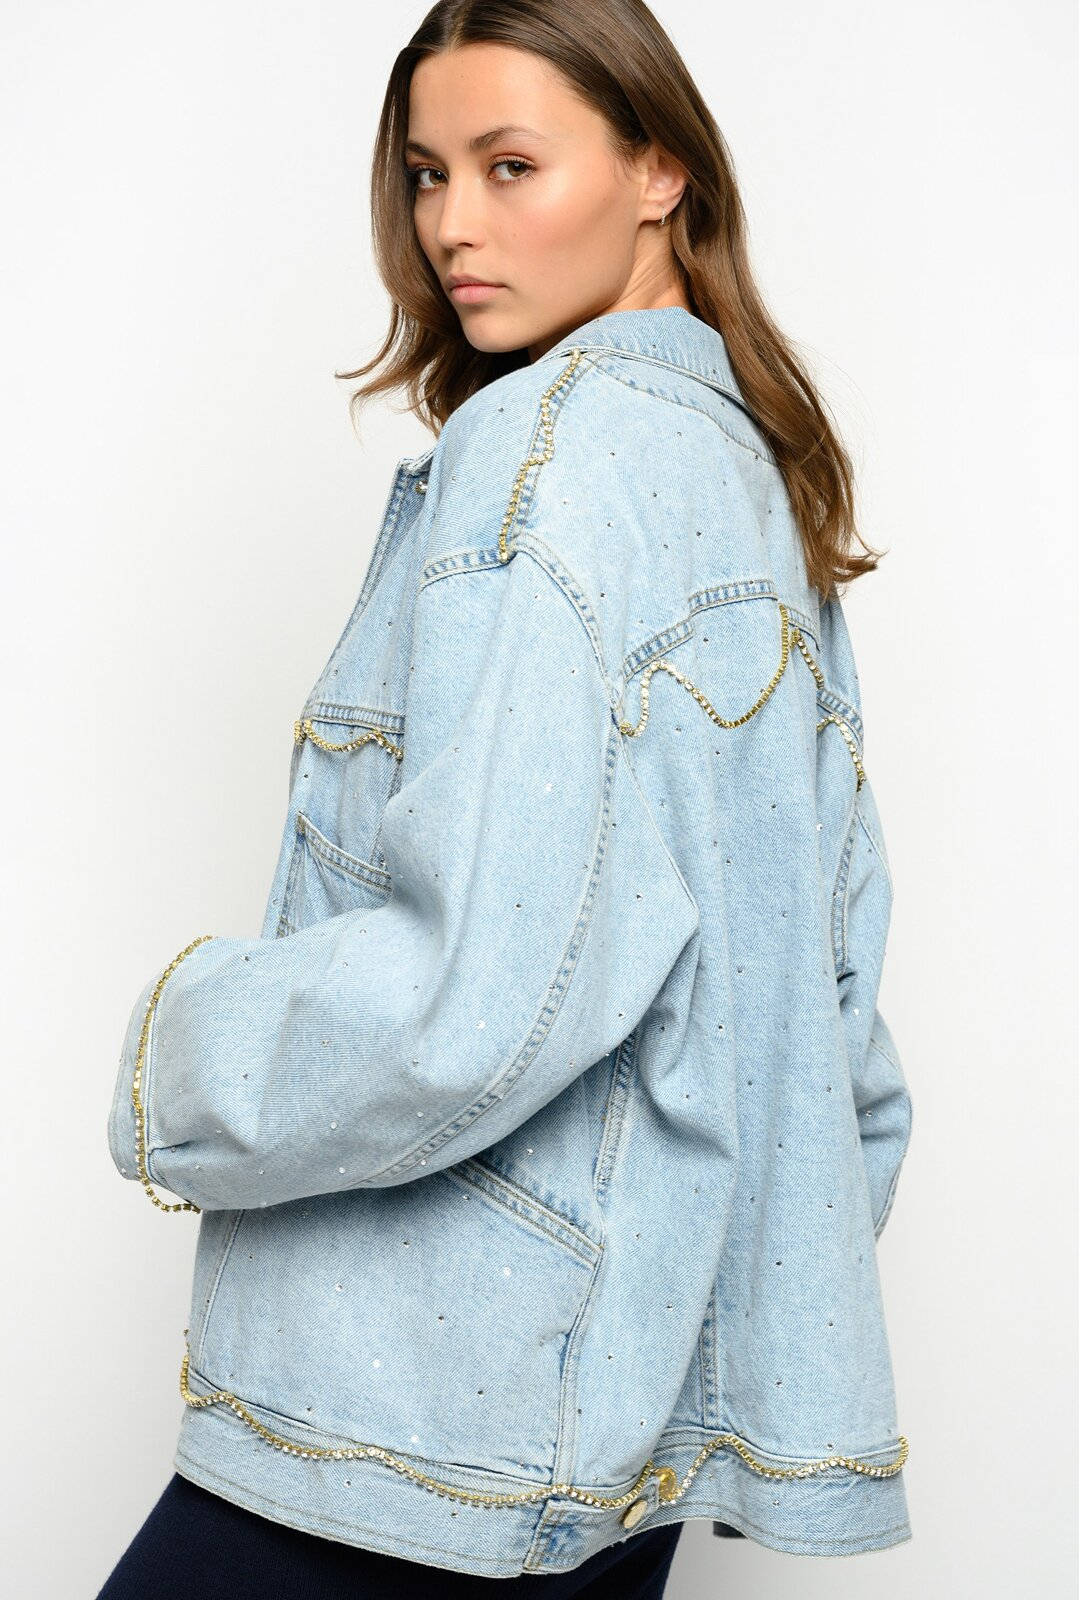 Denim Jacket With Strass - Pinko